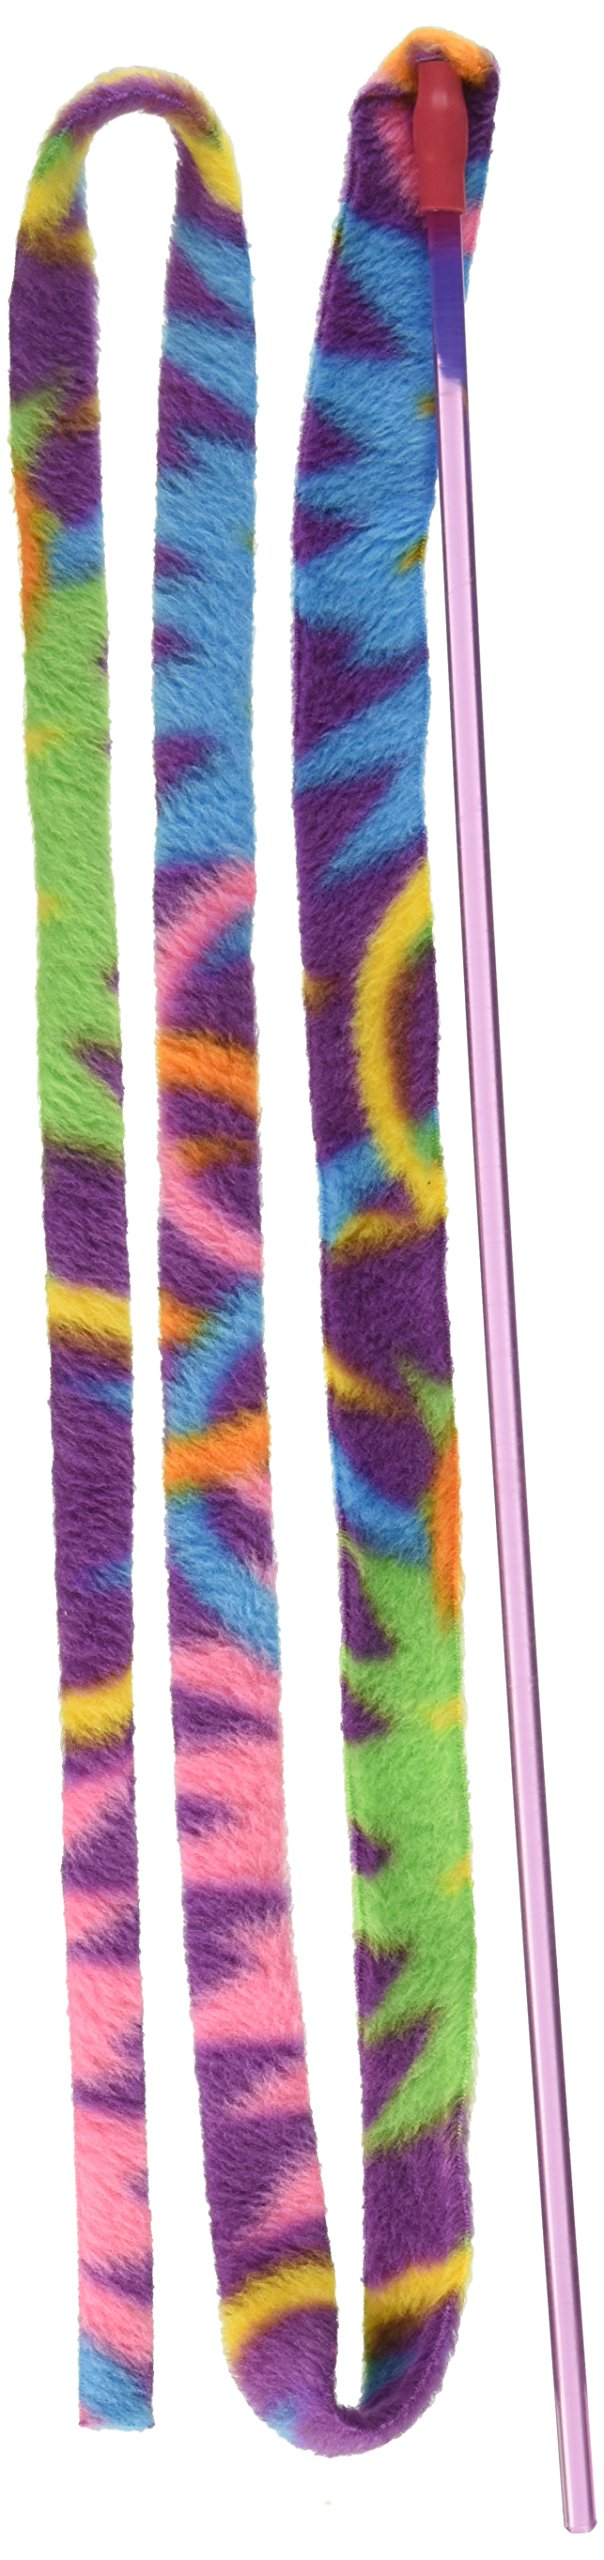 Cat Charmer Cat Toy [Set of 2] by CAT DANCER